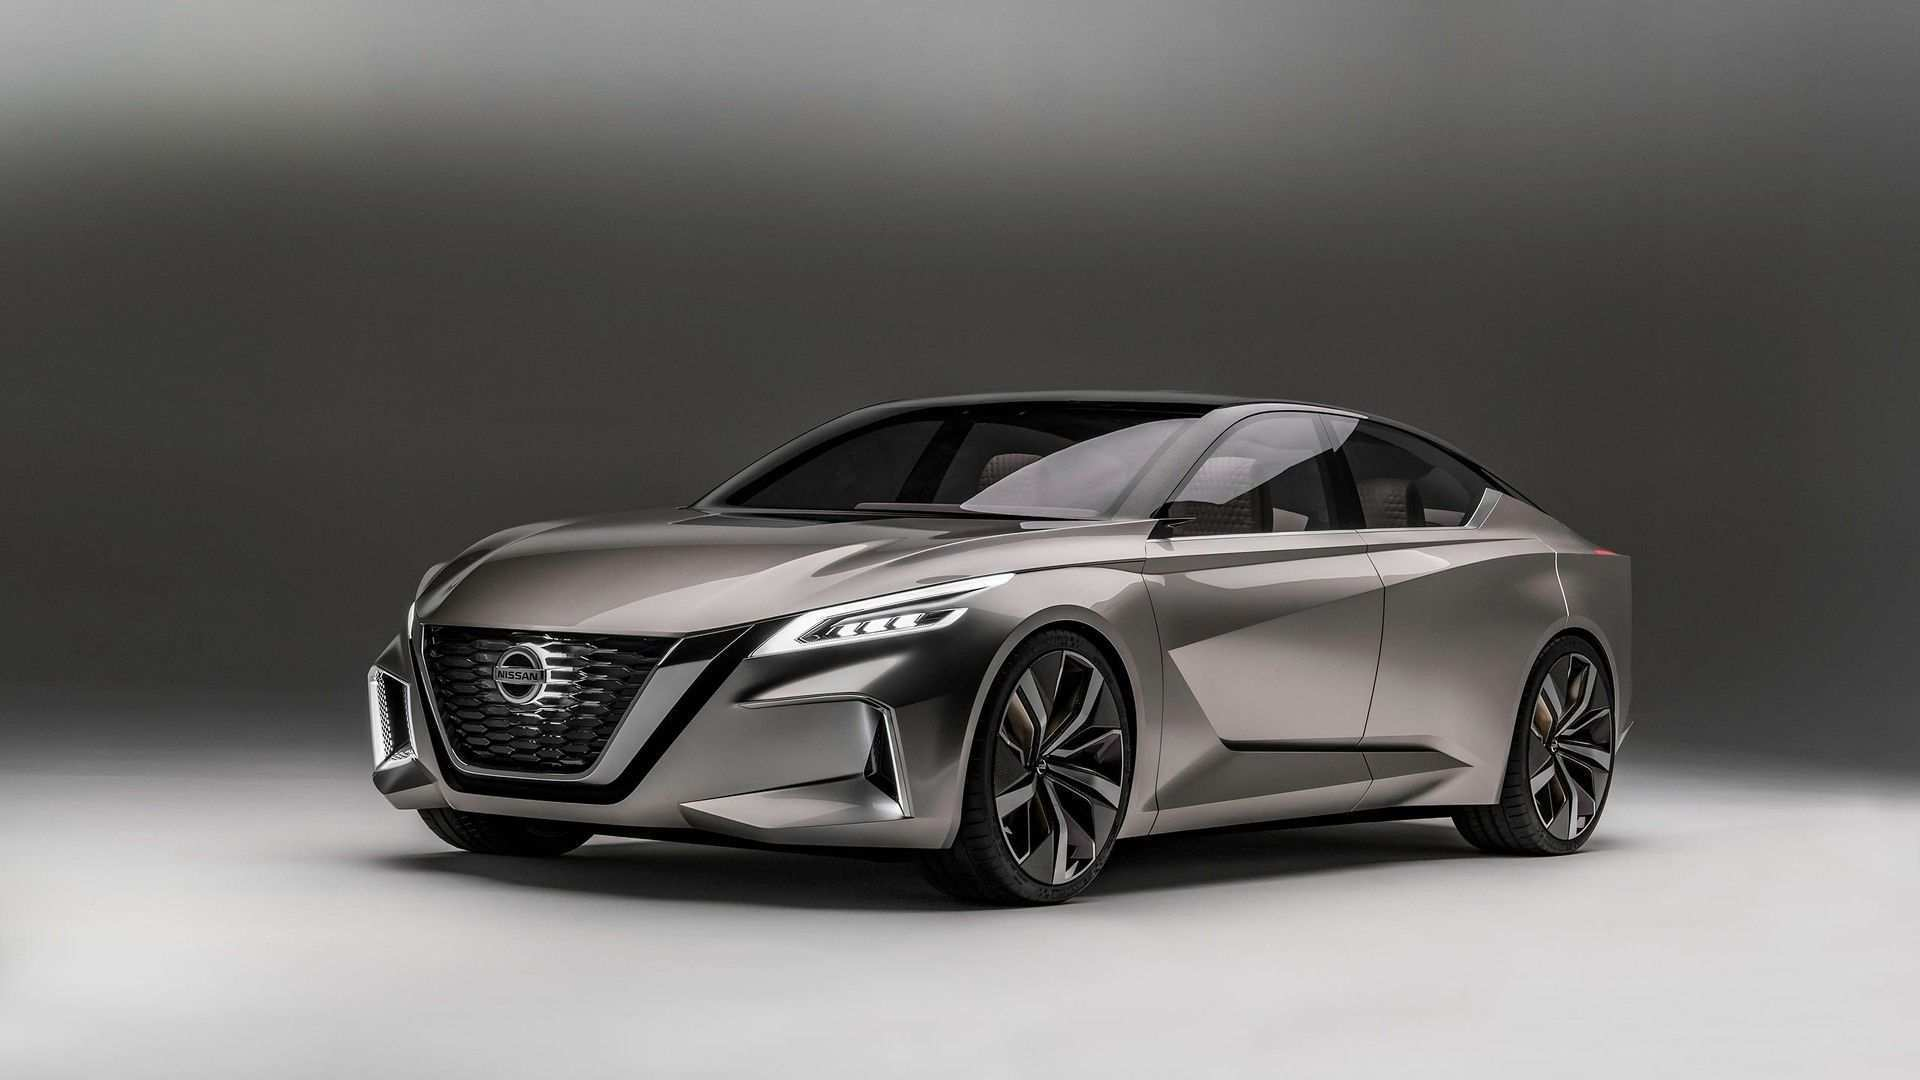 71 The Best 2020 Nissan Maxima Detailed Concept